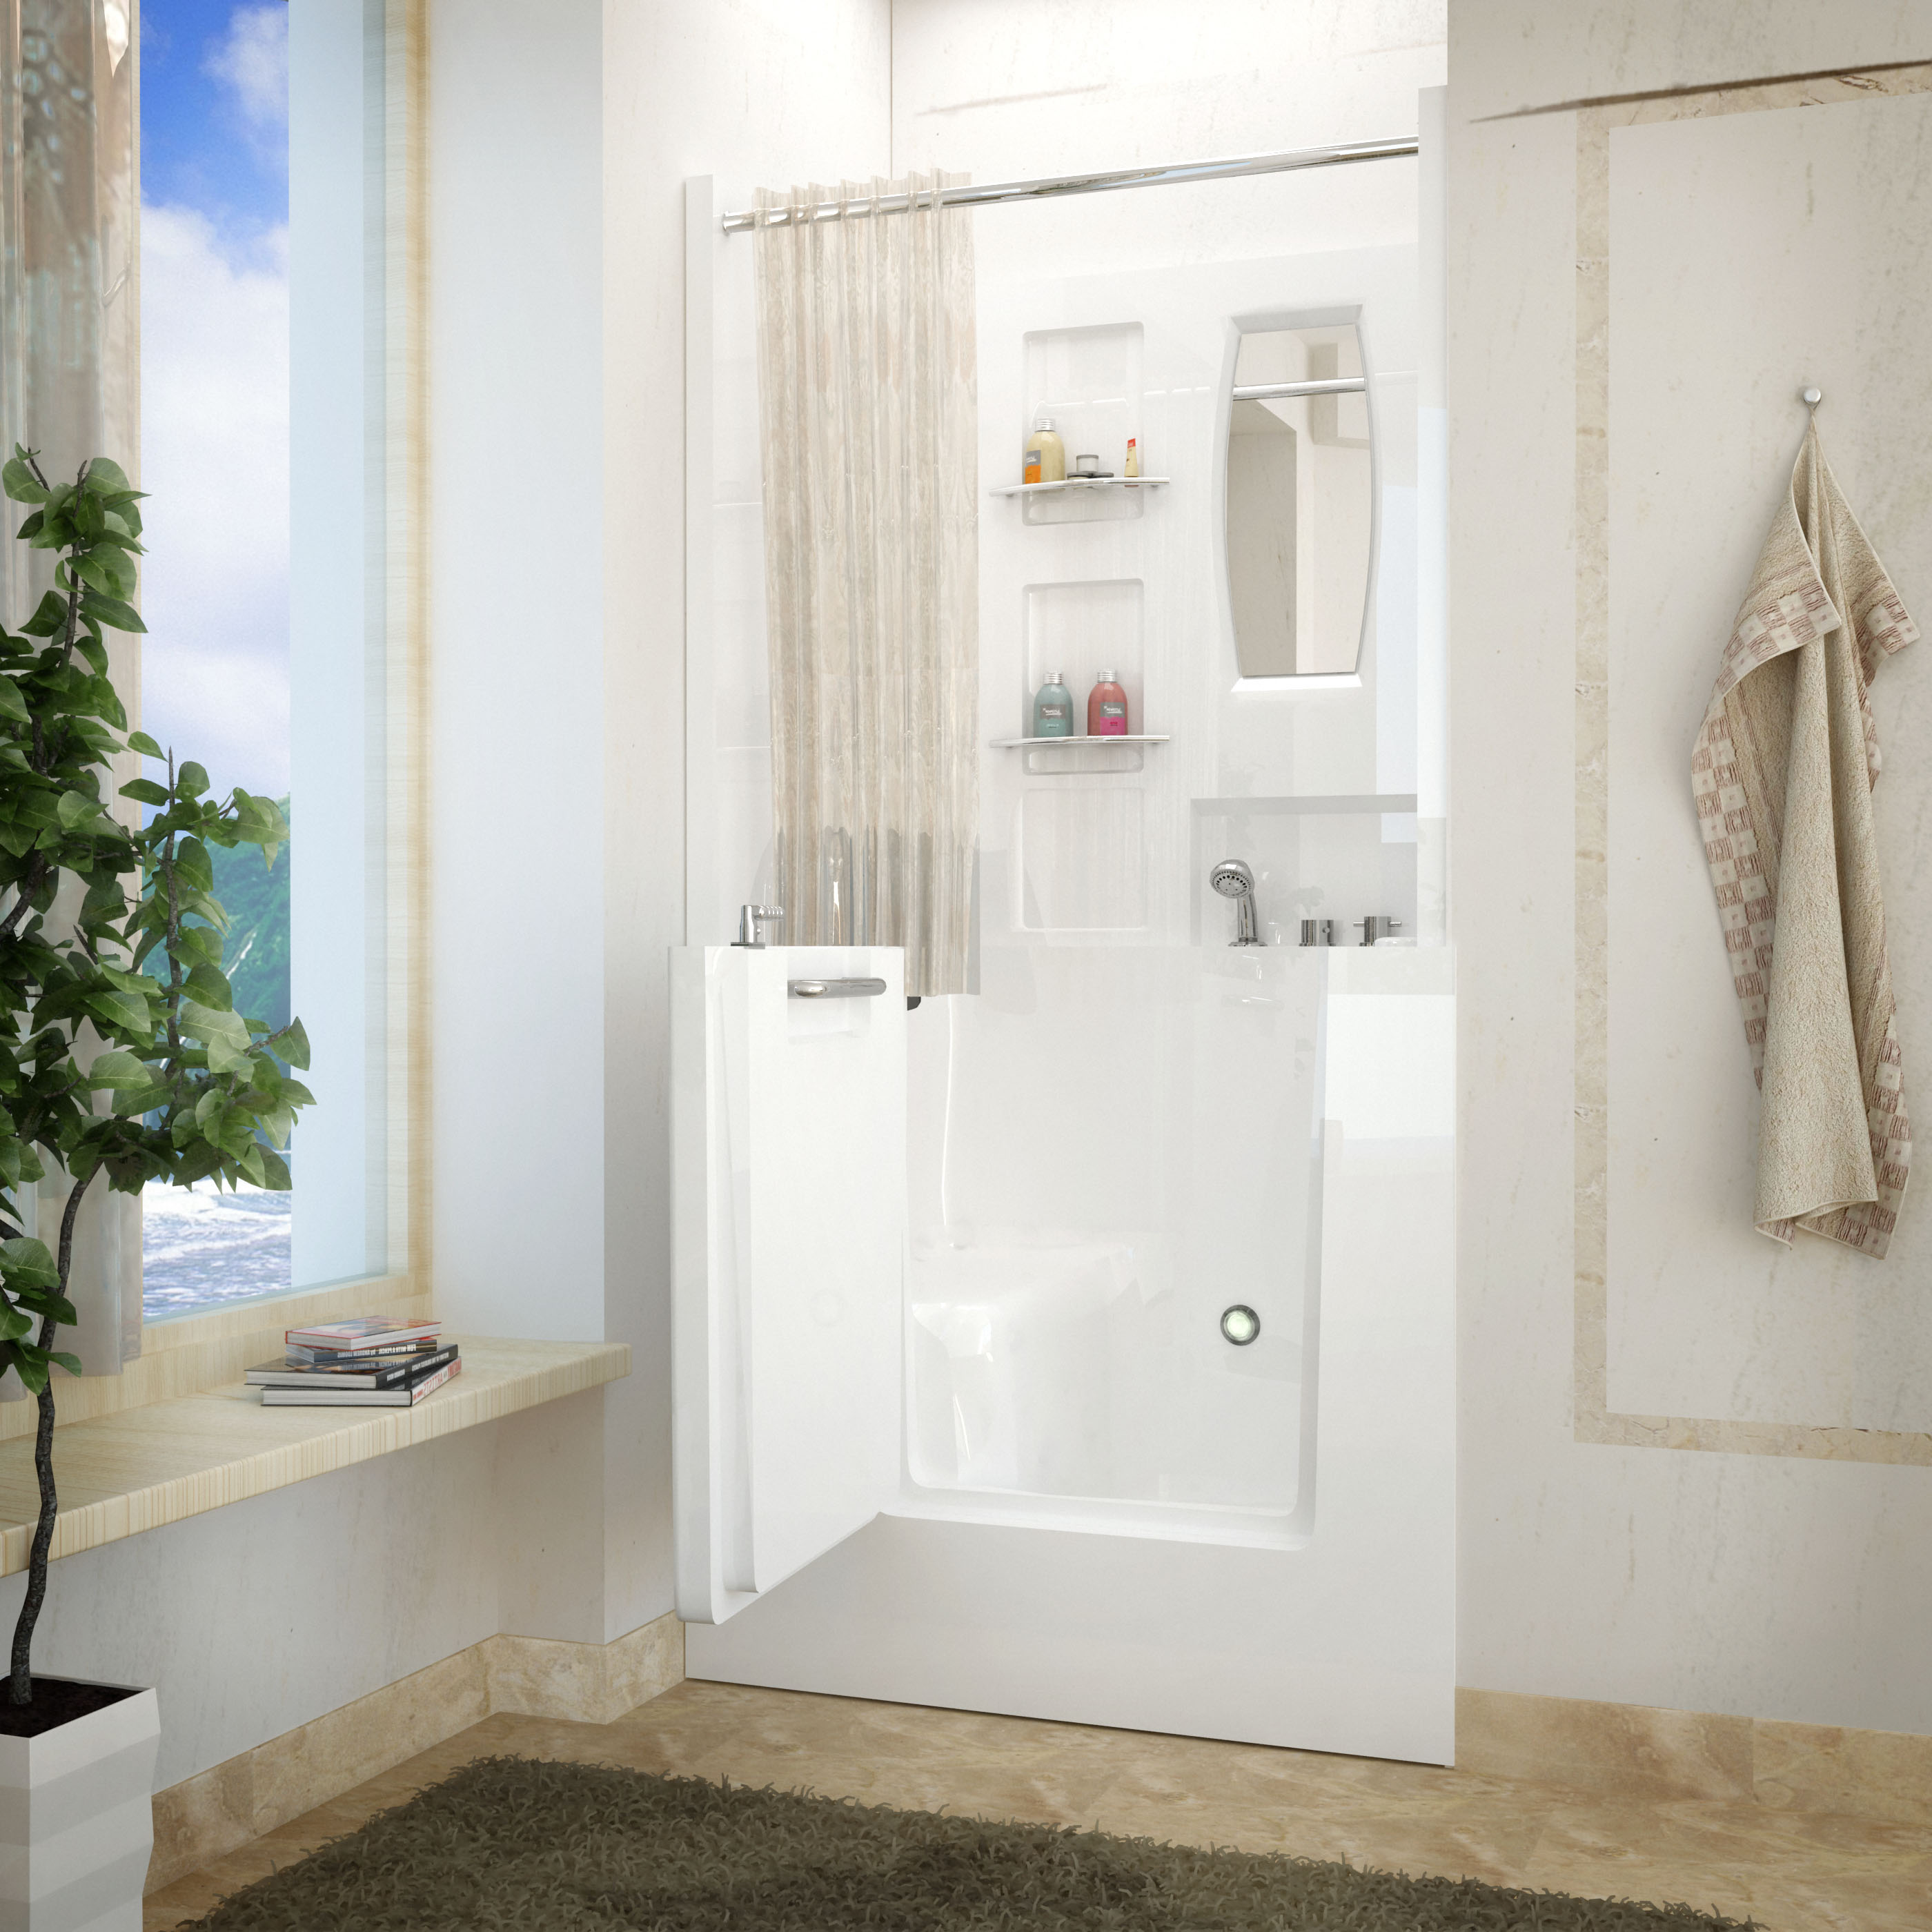 Venzi 40 X 31 Right Drain White Walk In Bathtub Shower Enclosure ...